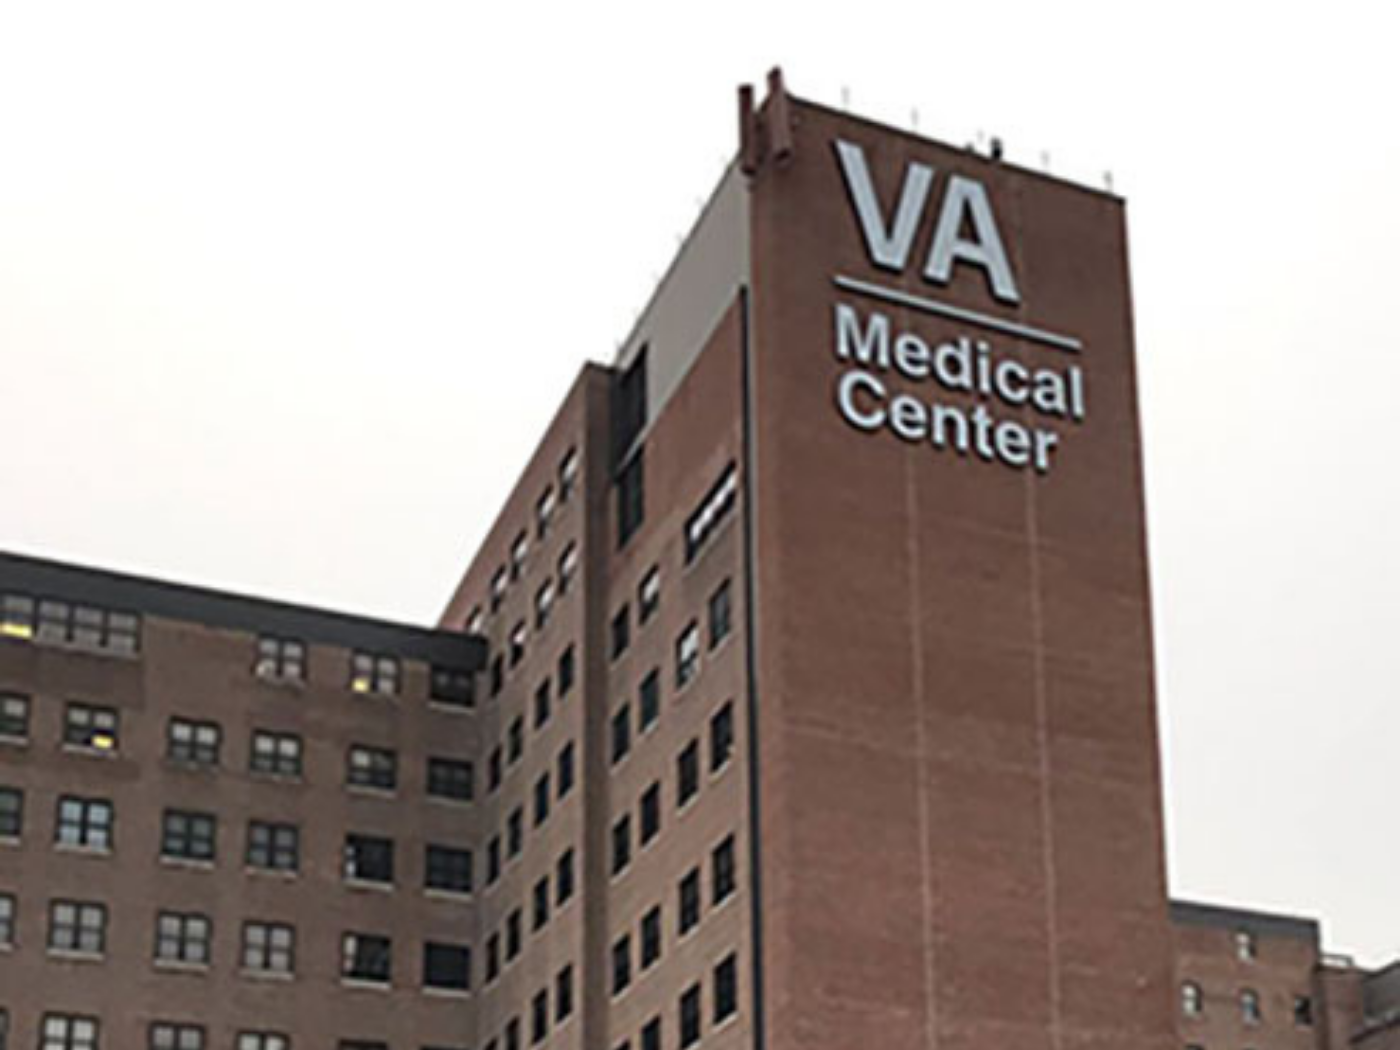 Large channel letters grace the exterior of the Syracuse VA Medical Center.